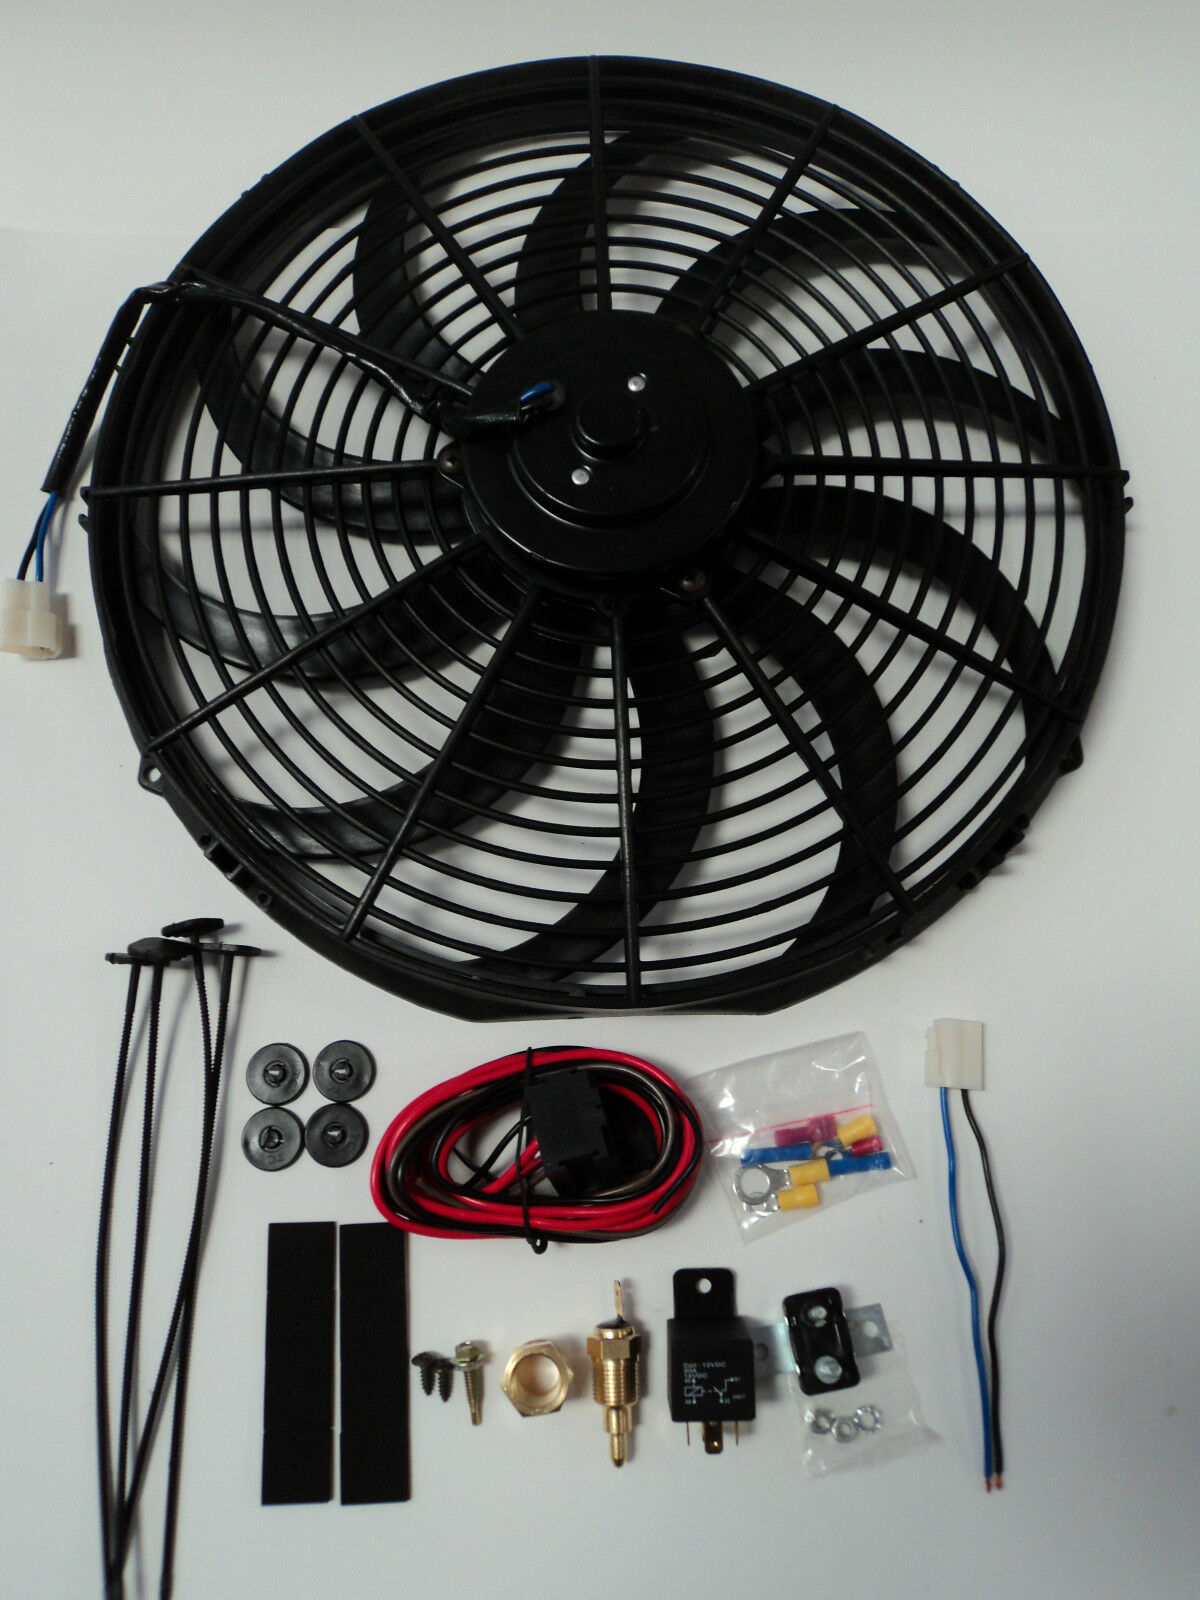 16 U0026quot  Electric Fan 3000 Cfm   Wiring Install Kit Complete